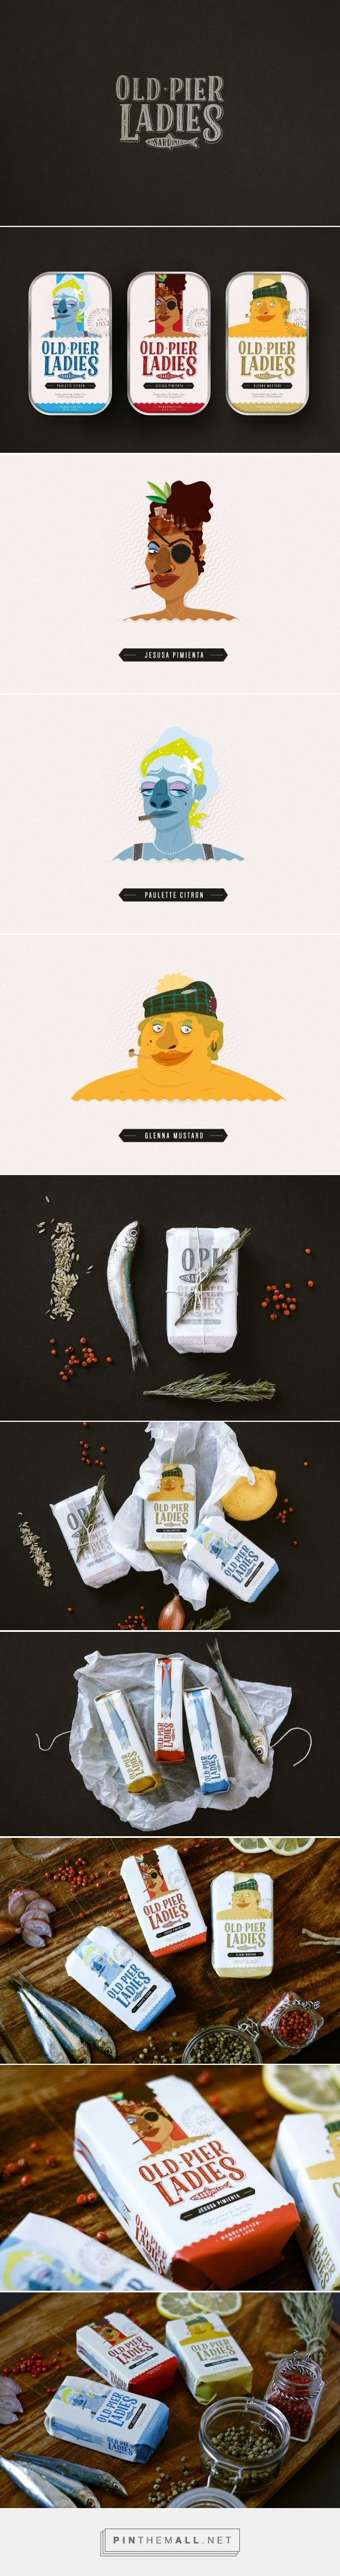 Old Pier Ladies (Concept) - Packaging of the World - Creative Package Design…